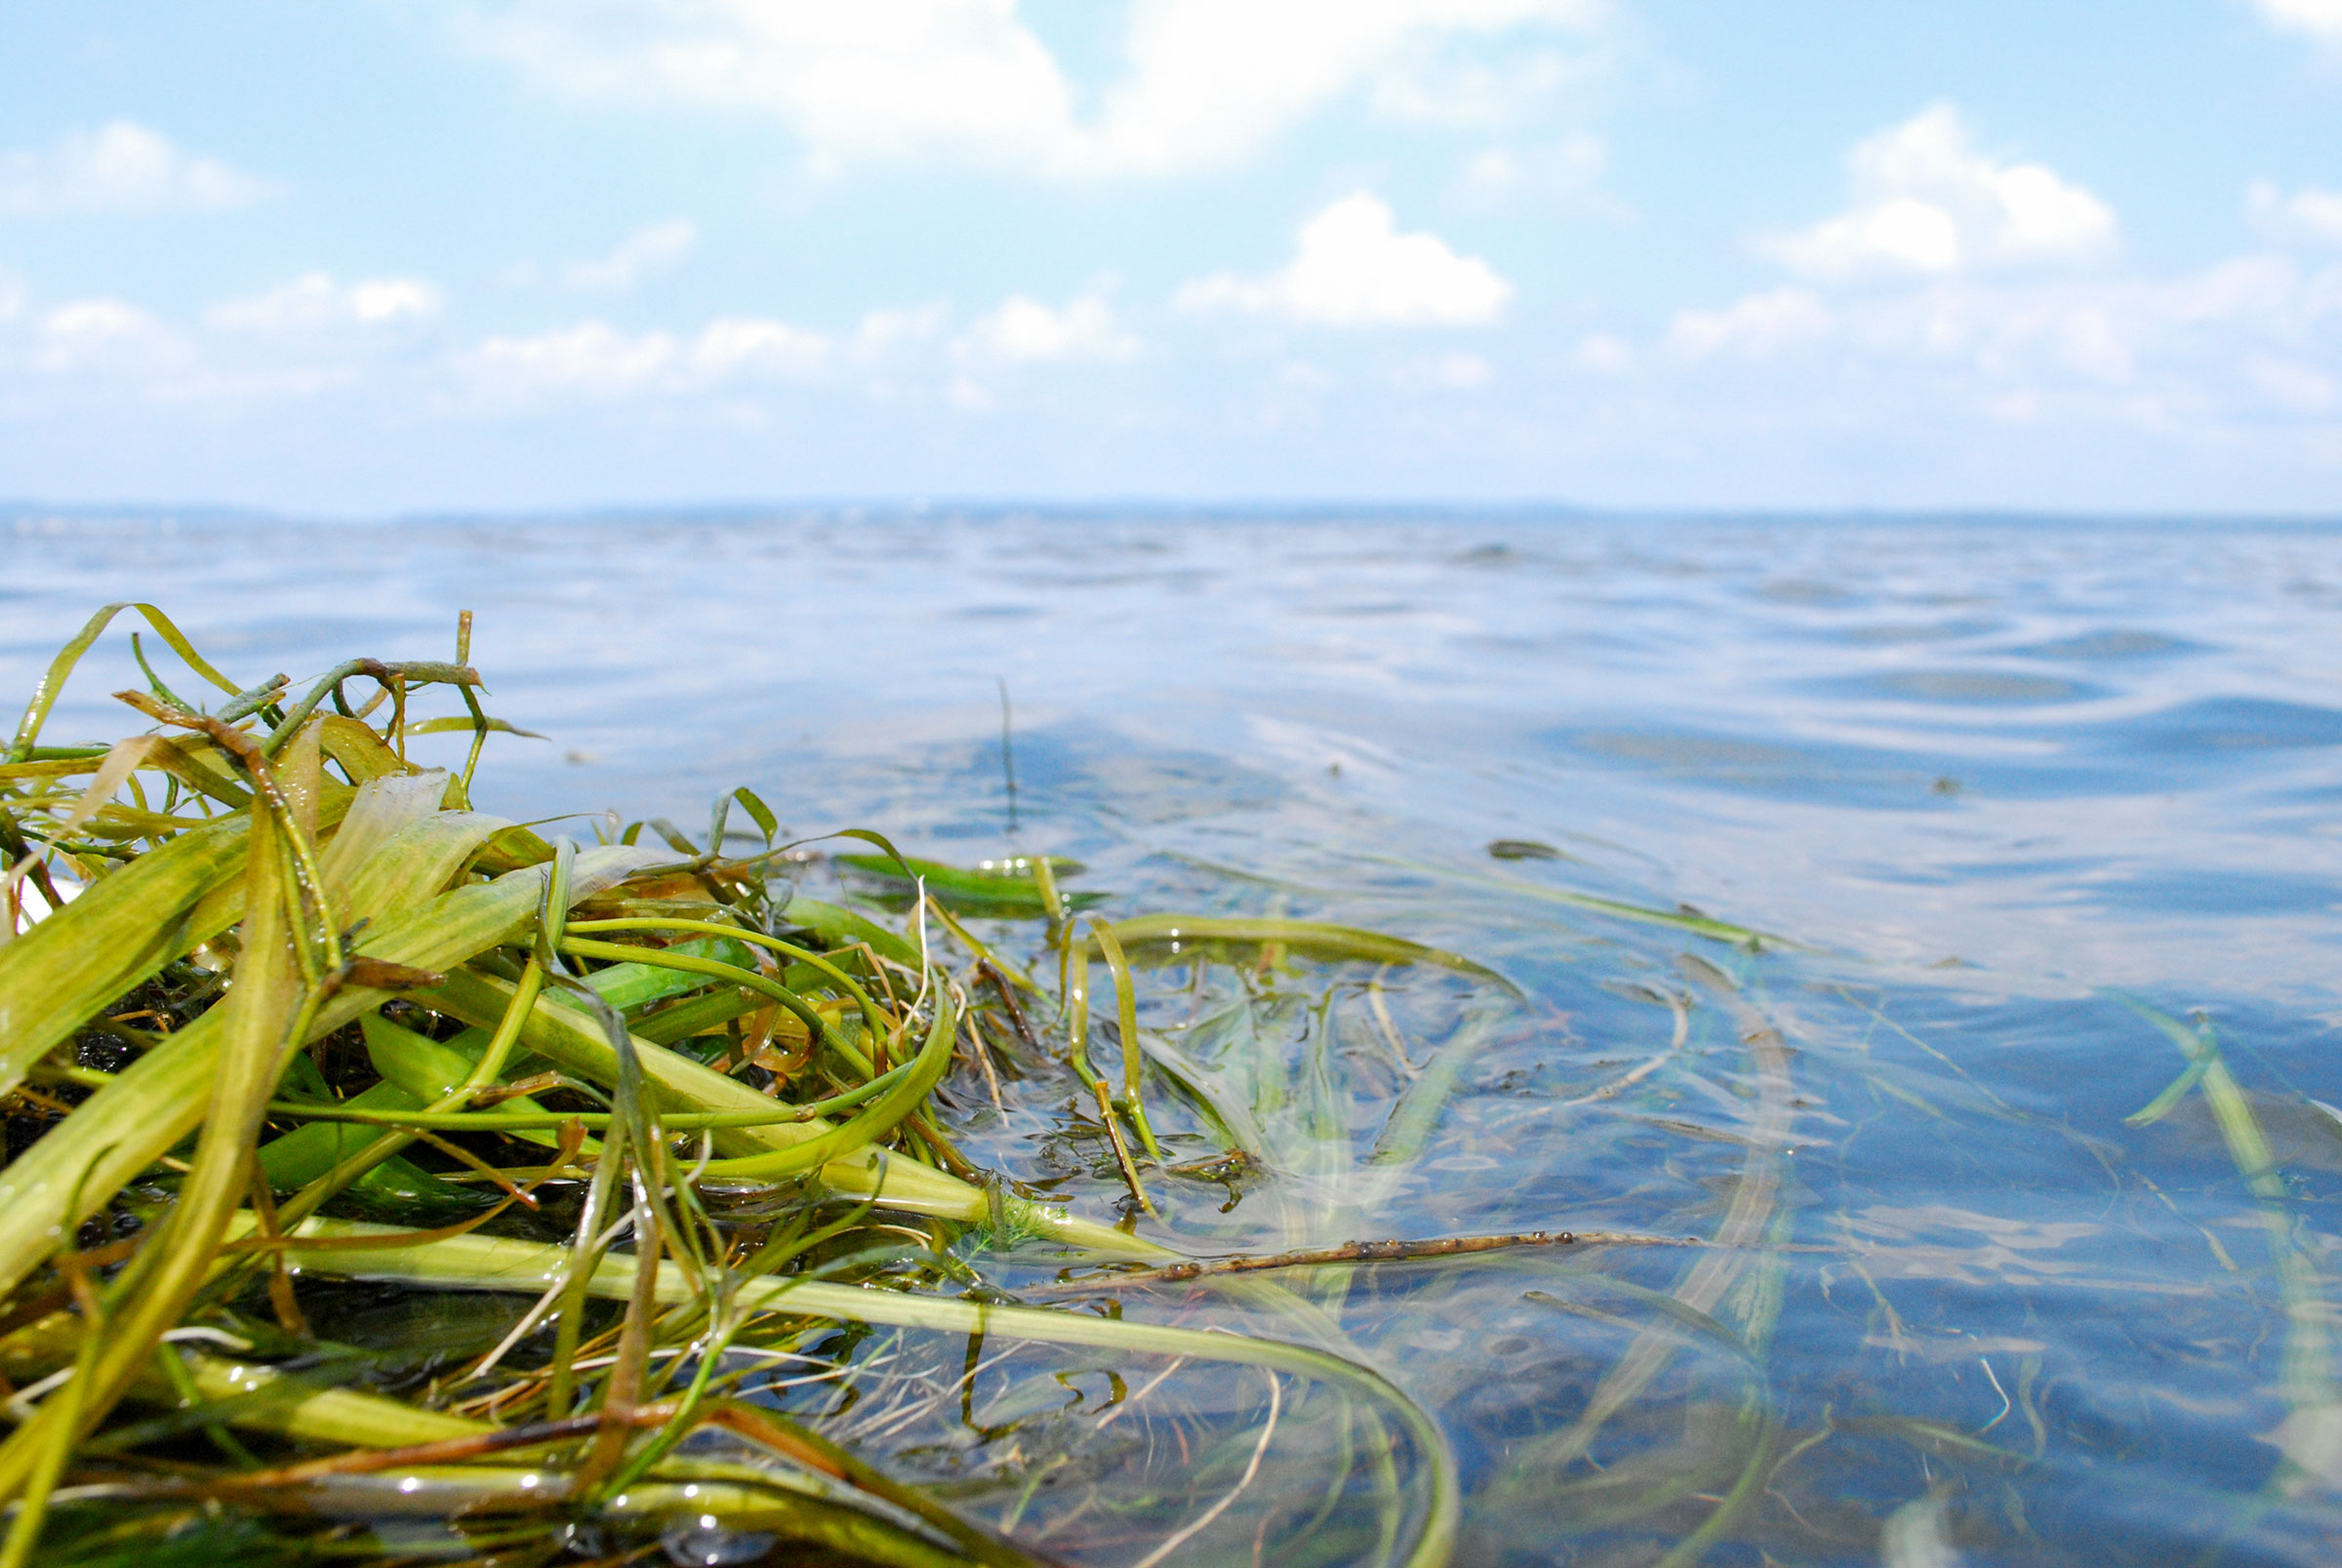 Seagrasses require clean water to grow, so their recovery in the Chesapeake Bay is a sign of a successful pollution cleanup. Chesapeake Bay Program